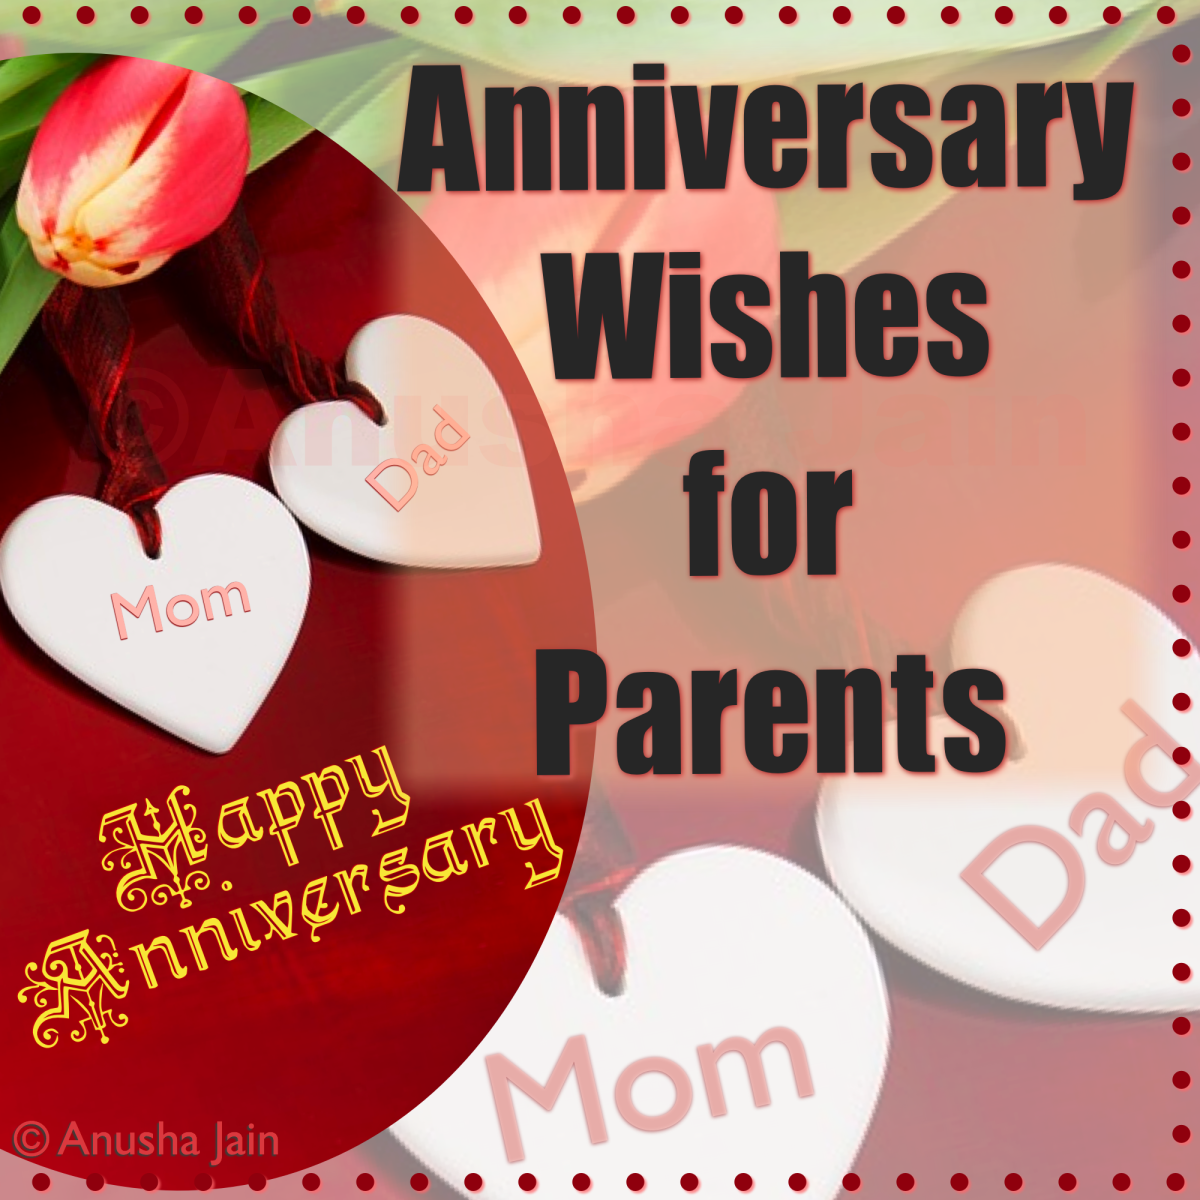 Best Gift For Mom And Dad Wedding Anniversary : Happy Anniversary Mom & DadPoems and Anniversary Quotes for Parents ...